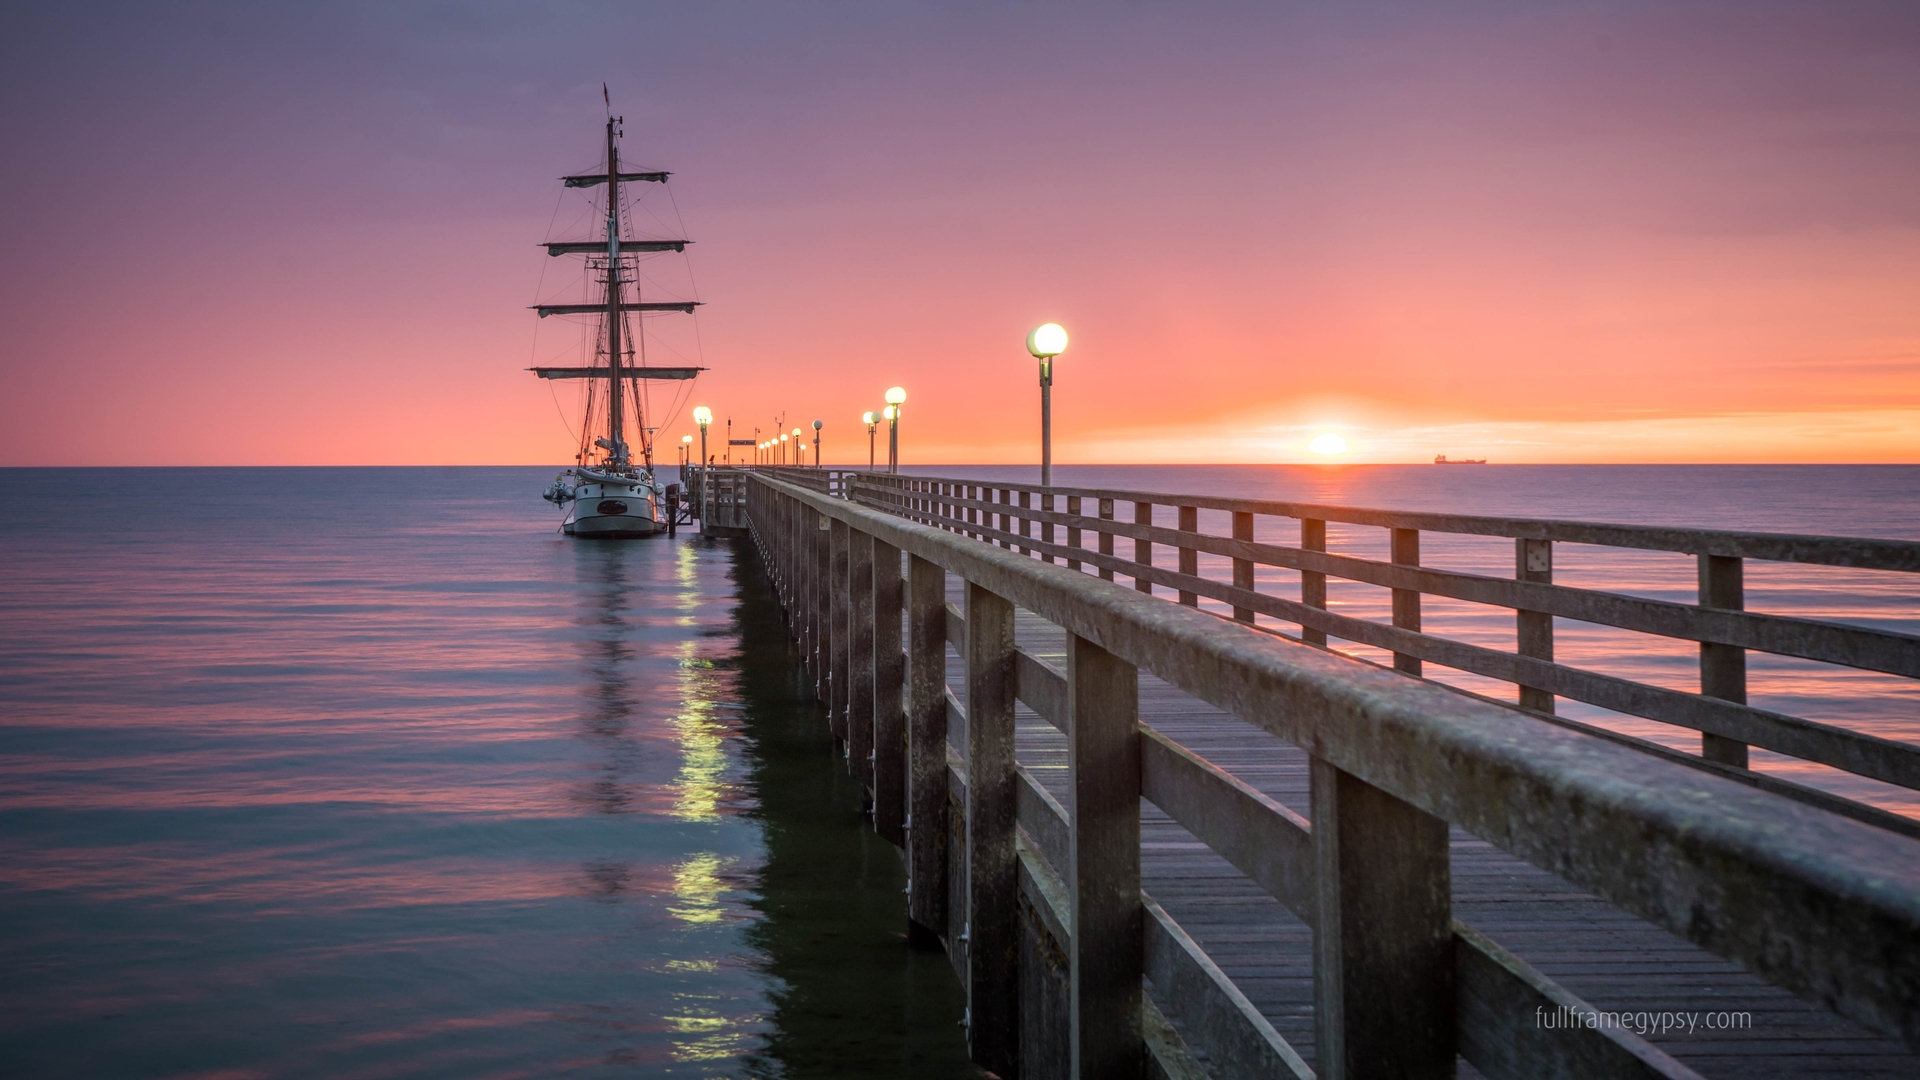 Pier and sea at sunset in Binz, Germany